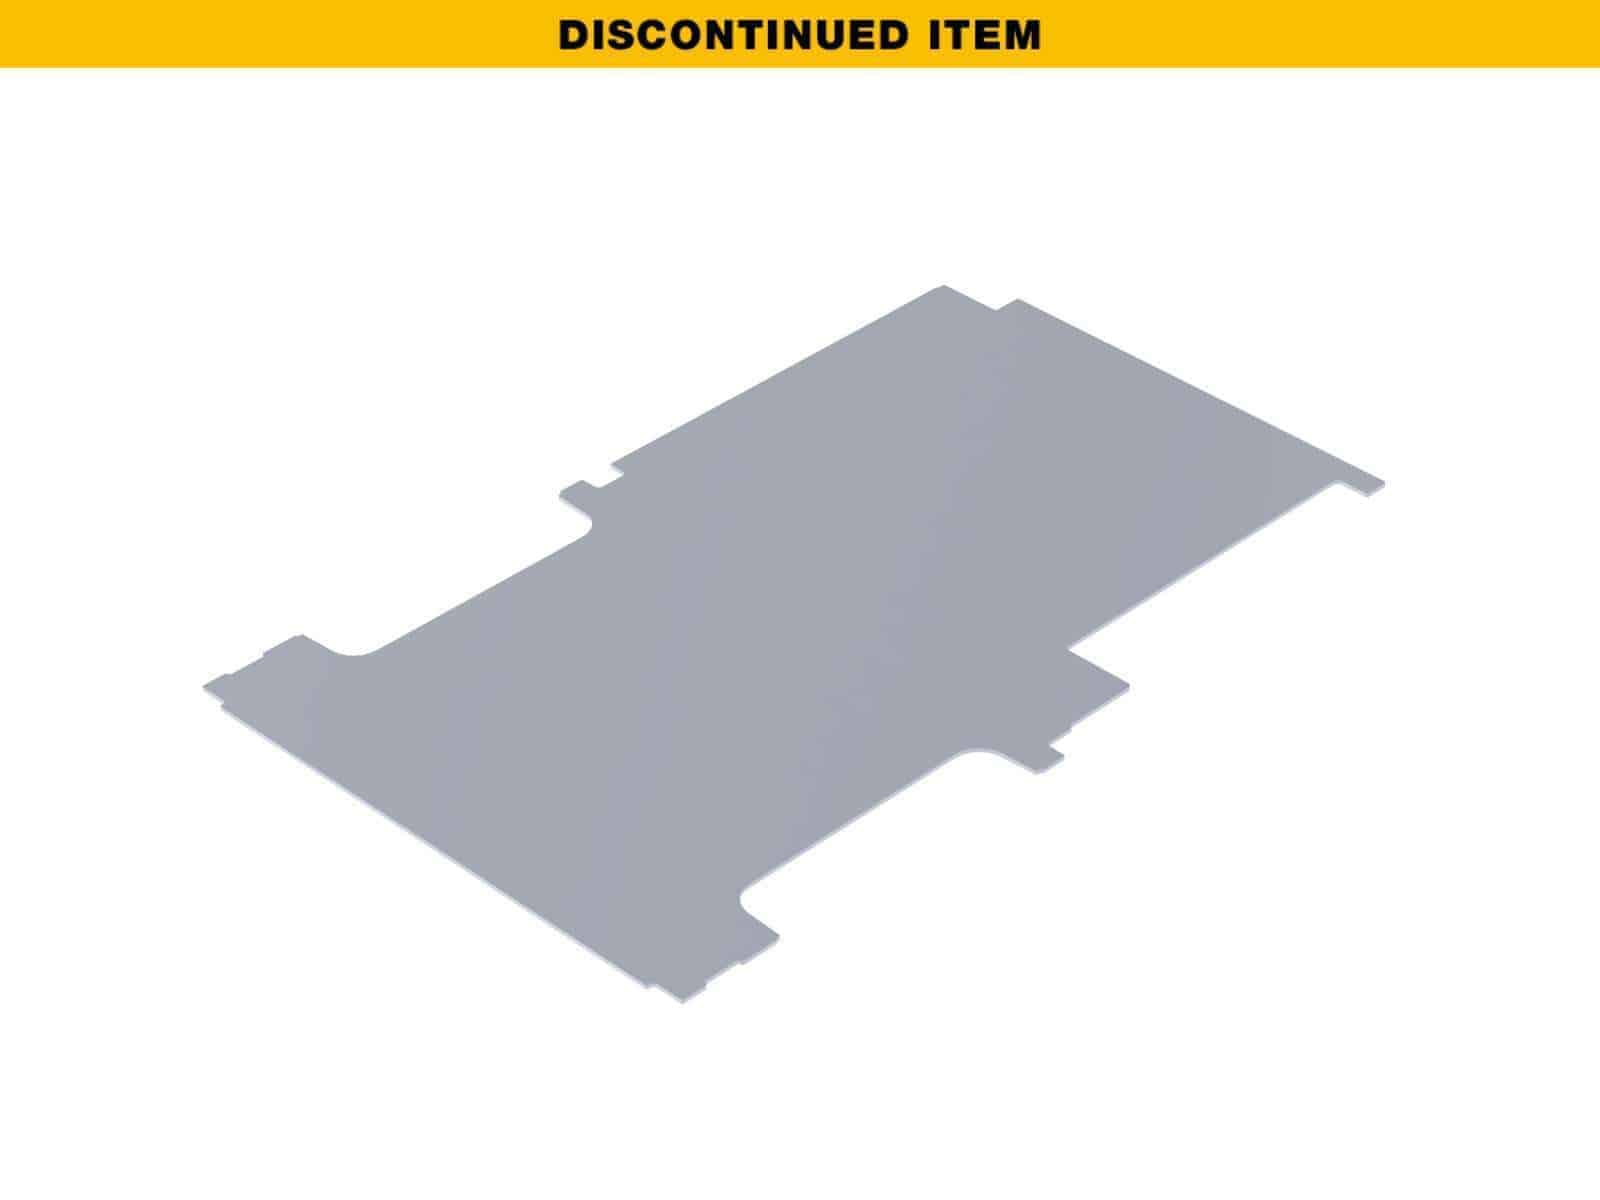 HD-Ultragrip-Van-Floor-Liner-Transit-Short-130-WB-6532-discontinued